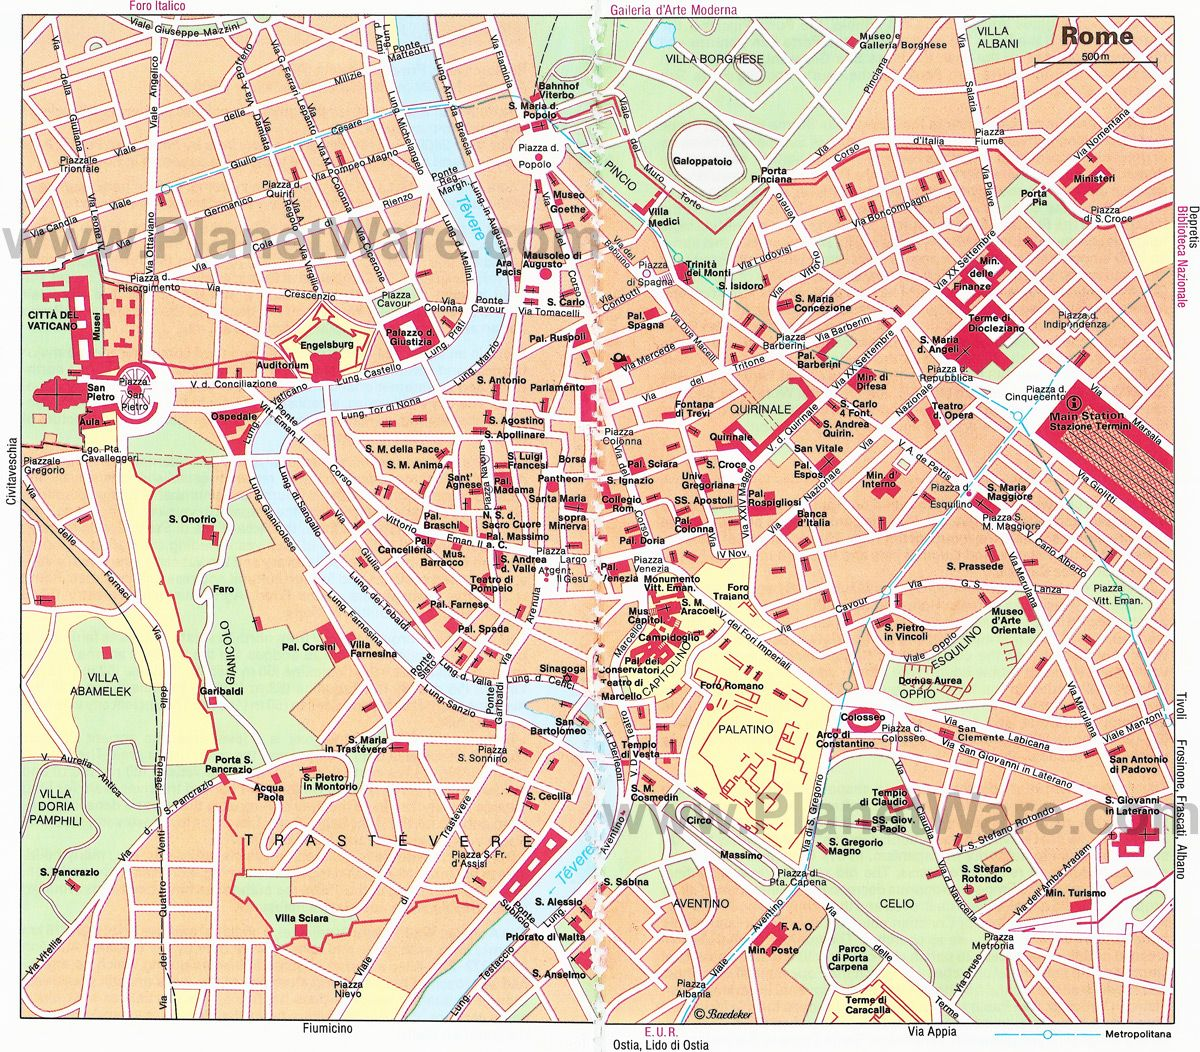 Really good Map of Rome Attractions and neighborhoods ... on map of rimini italy, map of perugia italy, map of molise italy, map of tropea italy, map of naples italy, map of treviso italy, map of palermo italy, map of milan italy, map of venice italy, map of viterbo italy, map of verona italy, map of salerno italy, map of tuscany italy, map of cremona italy, map of salina italy, map of pistoia italy, map of sardinia italy, map of la maddalena italy, map of chianti italy, map of alghero italy,